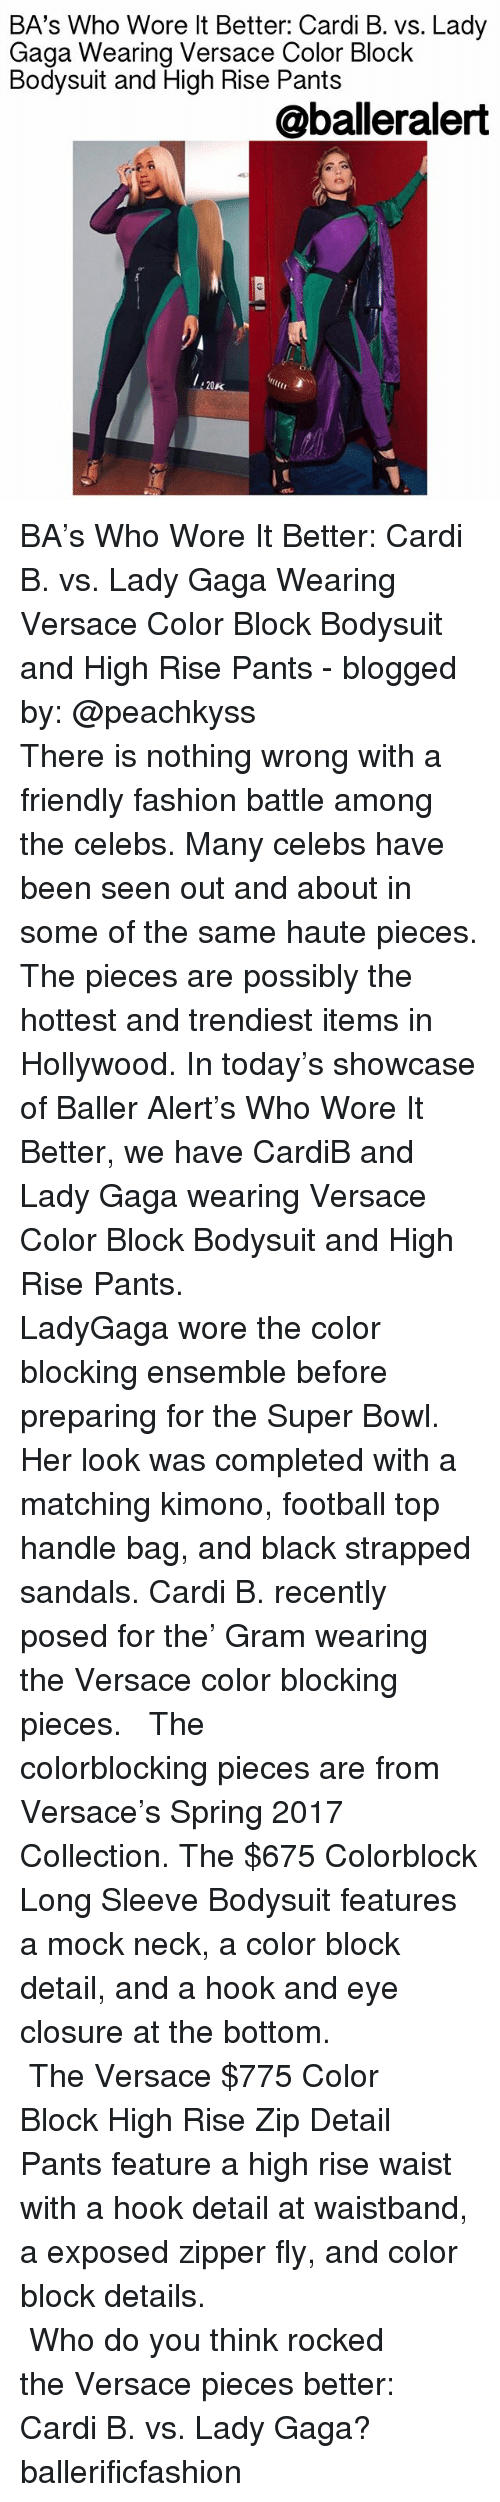 ensemble: BA's Who Wore lt Better: Cardi B. vs. Lady  Gaga Wearina Versace Color Block  Bodysuit and High Rise Pants  @balleralert  20K BA's Who Wore It Better: Cardi B. vs. Lady Gaga Wearing Versace Color Block Bodysuit and High Rise Pants - blogged by: @peachkyss ⠀⠀⠀⠀⠀⠀⠀⠀⠀ ⠀⠀⠀⠀⠀⠀⠀⠀⠀ There is nothing wrong with a friendly fashion battle among the celebs. Many celebs have been seen out and about in some of the same haute pieces. The pieces are possibly the hottest and trendiest items in Hollywood. In today's showcase of Baller Alert's Who Wore It Better, we have CardiB and Lady Gaga wearing Versace Color Block Bodysuit and High Rise Pants. ⠀⠀⠀⠀⠀⠀⠀⠀⠀ ⠀⠀⠀⠀⠀⠀⠀⠀⠀ LadyGaga wore the color blocking ensemble before preparing for the Super Bowl. Her look was completed with a matching kimono, football top handle bag, and black strapped sandals. Cardi B. recently posed for the' Gram wearing the Versace color blocking pieces. ⠀⠀⠀⠀⠀⠀⠀⠀⠀ ⠀⠀⠀⠀⠀⠀⠀⠀⠀ The colorblocking pieces are from Versace's Spring 2017 Collection. The $675 Colorblock Long Sleeve Bodysuit features a mock neck, a color block detail, and a hook and eye closure at the bottom. ⠀⠀⠀⠀⠀⠀⠀⠀⠀ ⠀⠀⠀⠀⠀⠀⠀⠀⠀ The Versace $775 Color Block High Rise Zip Detail Pants feature a high rise waist with a hook detail at waistband, a exposed zipper fly, and color block details. ⠀⠀⠀⠀⠀⠀⠀⠀⠀ ⠀⠀⠀⠀⠀⠀⠀⠀⠀ ⠀⠀⠀⠀⠀⠀⠀⠀⠀ ⠀⠀⠀⠀⠀⠀⠀⠀⠀ Who do you think rocked the Versace pieces better: Cardi B. vs. Lady Gaga? ballerificfashion